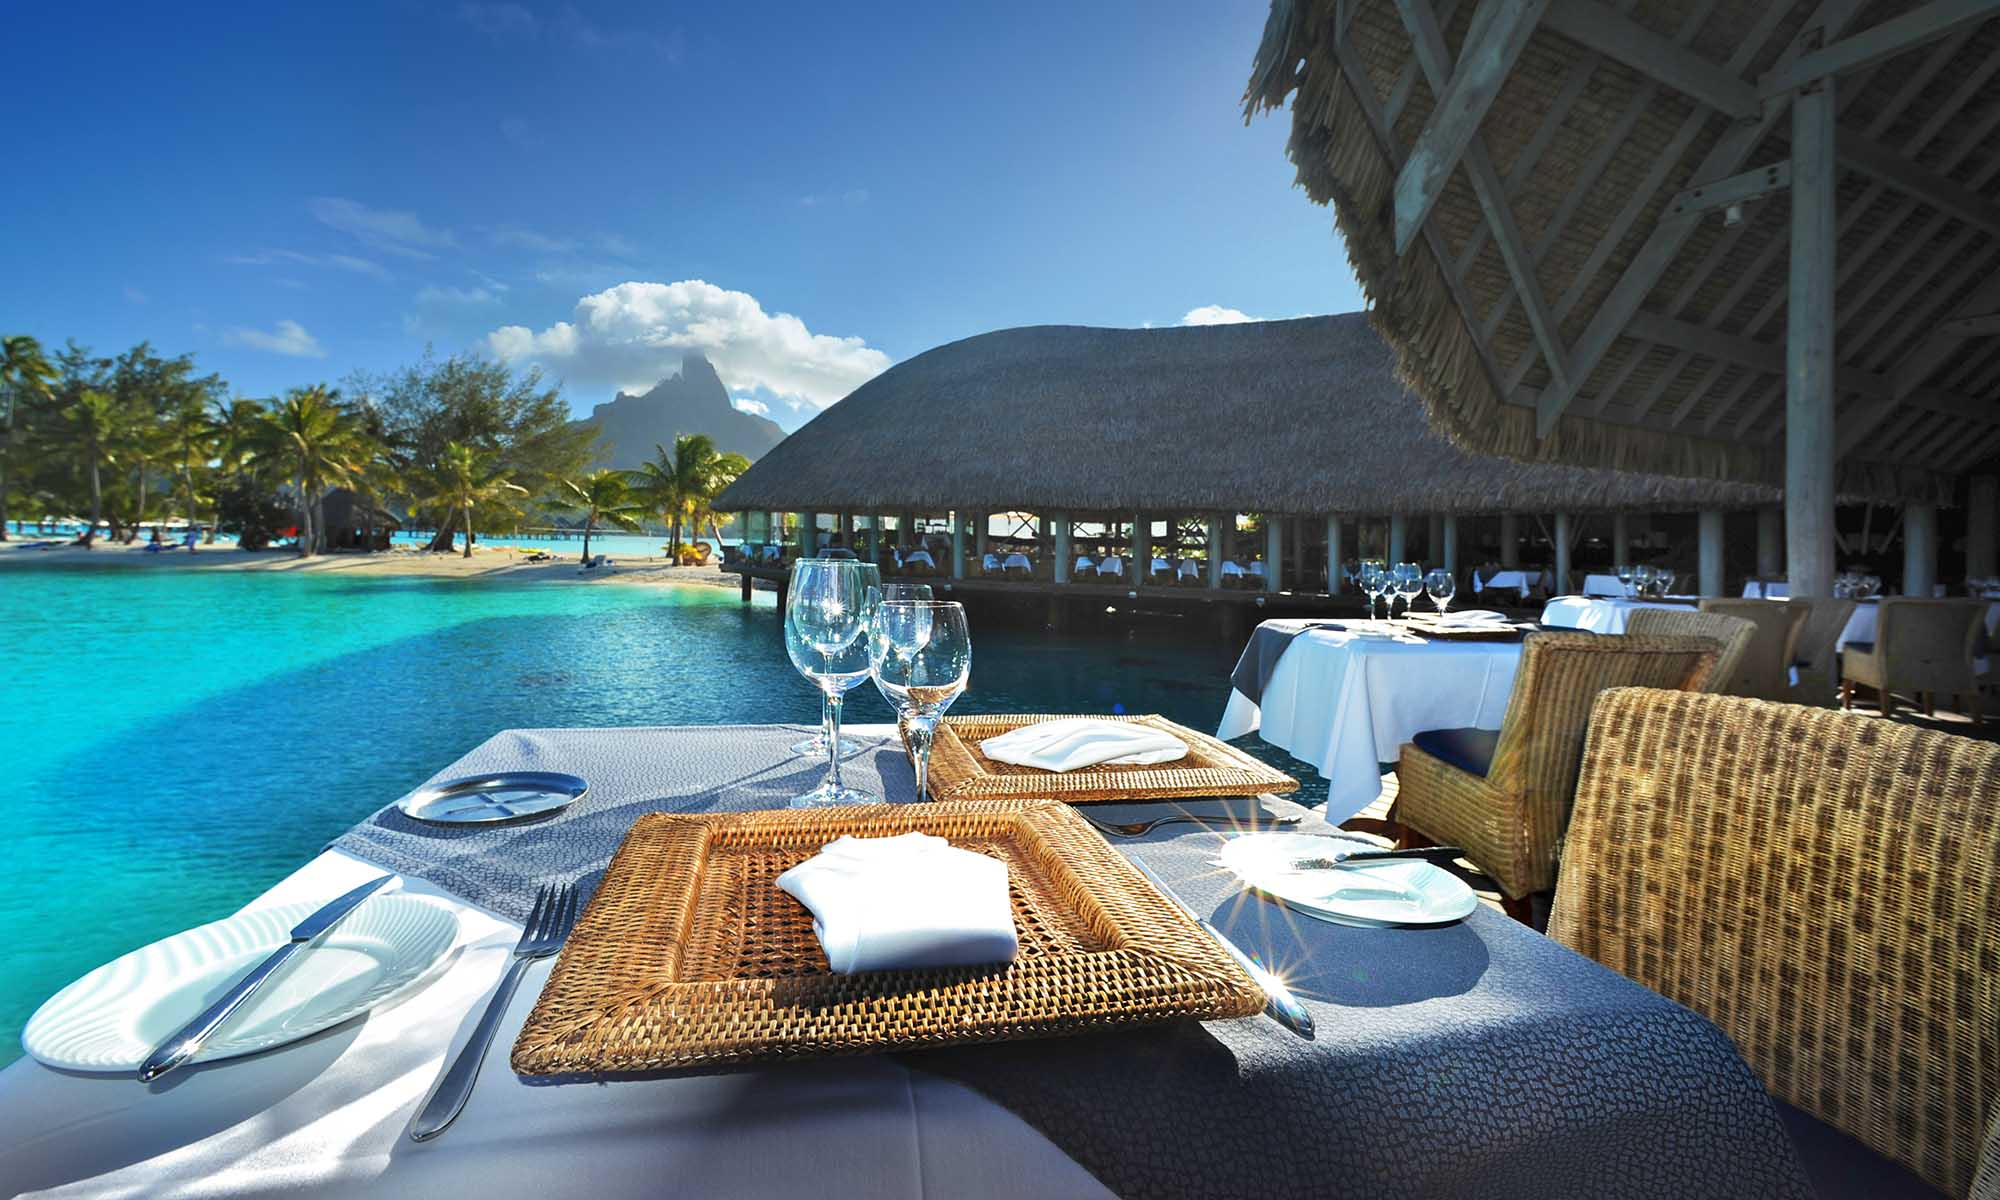 Dine with a View of Le Meridien Bora Bora's Lagoonarium